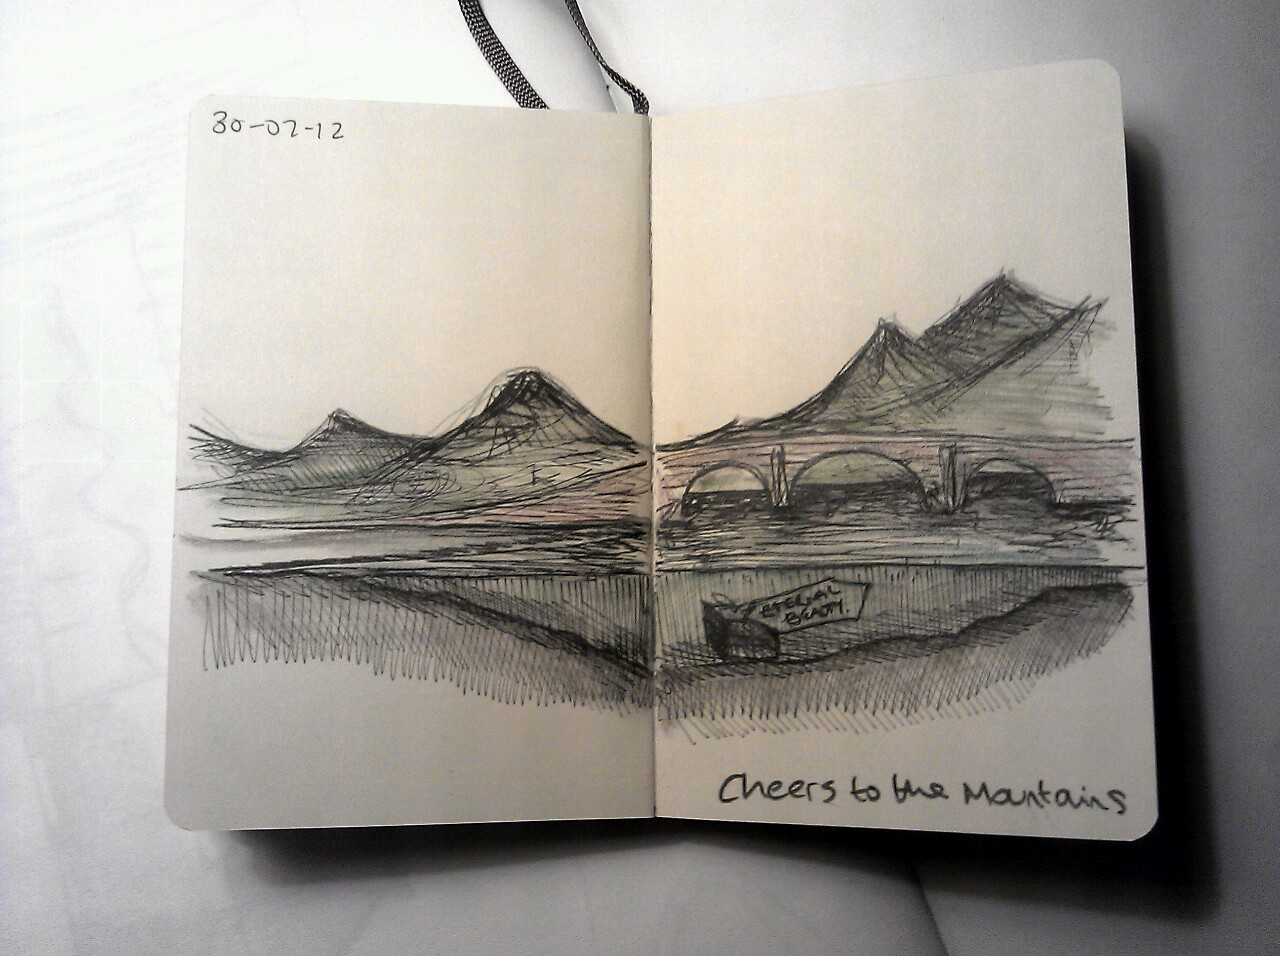 365 drawings later … day 181 … cheers to the mountains